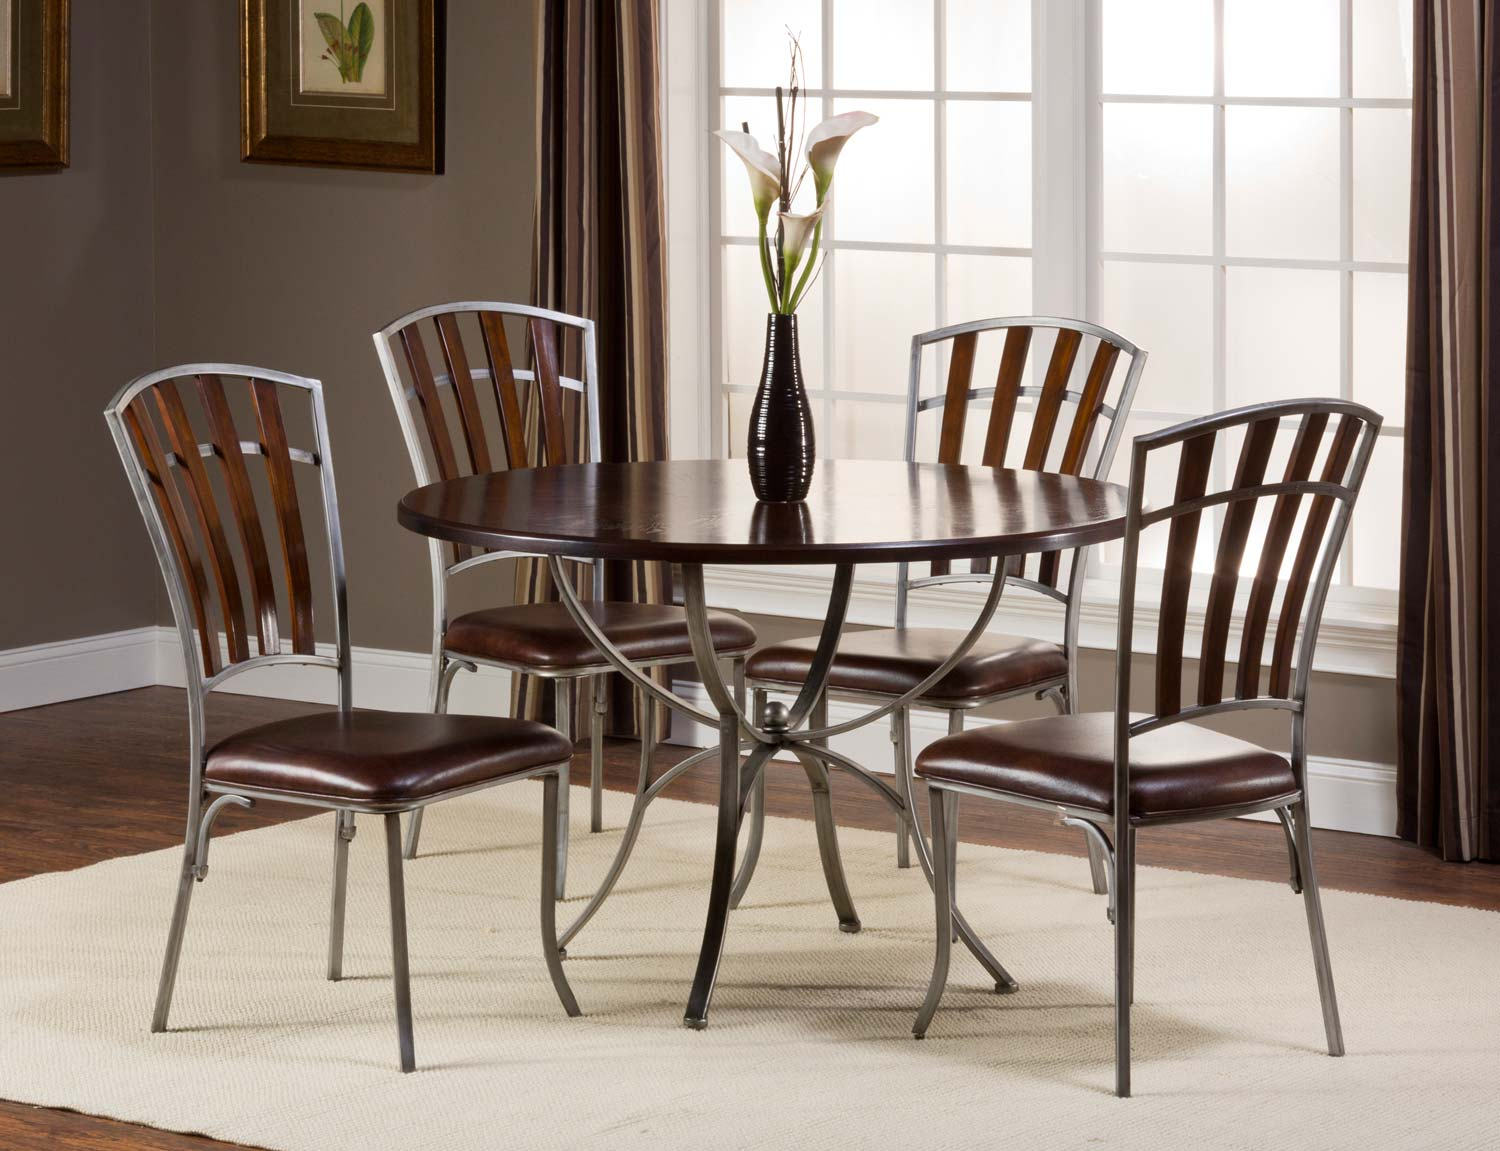 Hillsdale Sarasota Round Dining Set - Dark Walnut